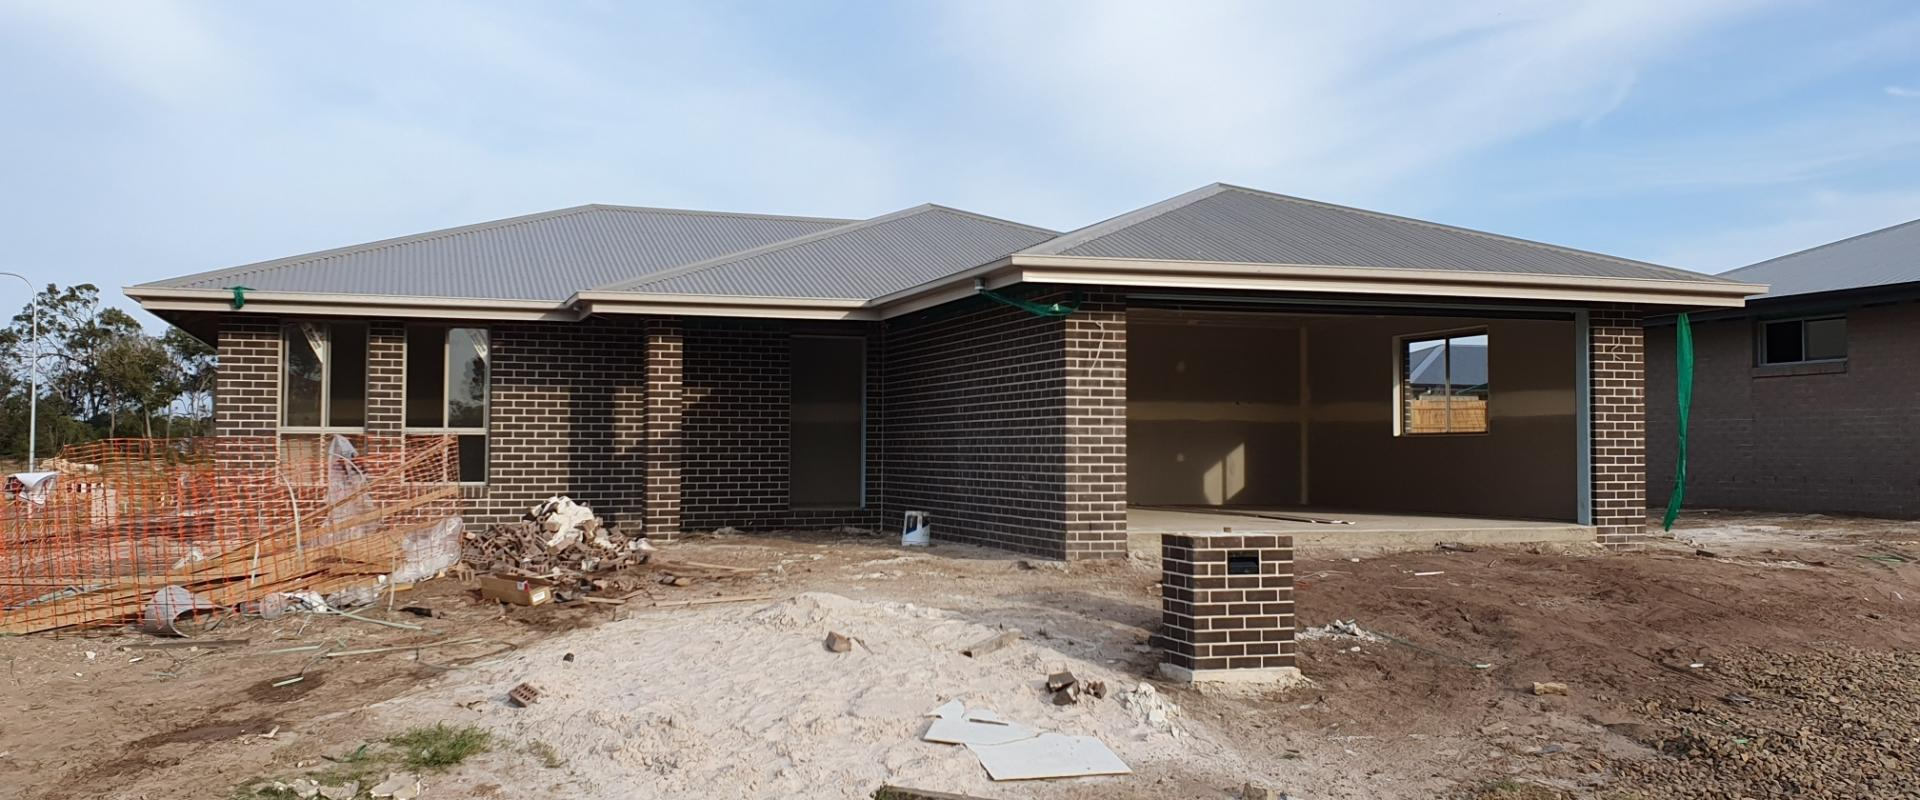 BRAND NEW FAMILY HOME WITH EXECUTIVE INCLUSIONS: STONE BENCHTOPS AND DISHWASHER, AIR CONDITIONING, FULL TURF, HORIZONTAL PALINGS GATES & RETURNS.